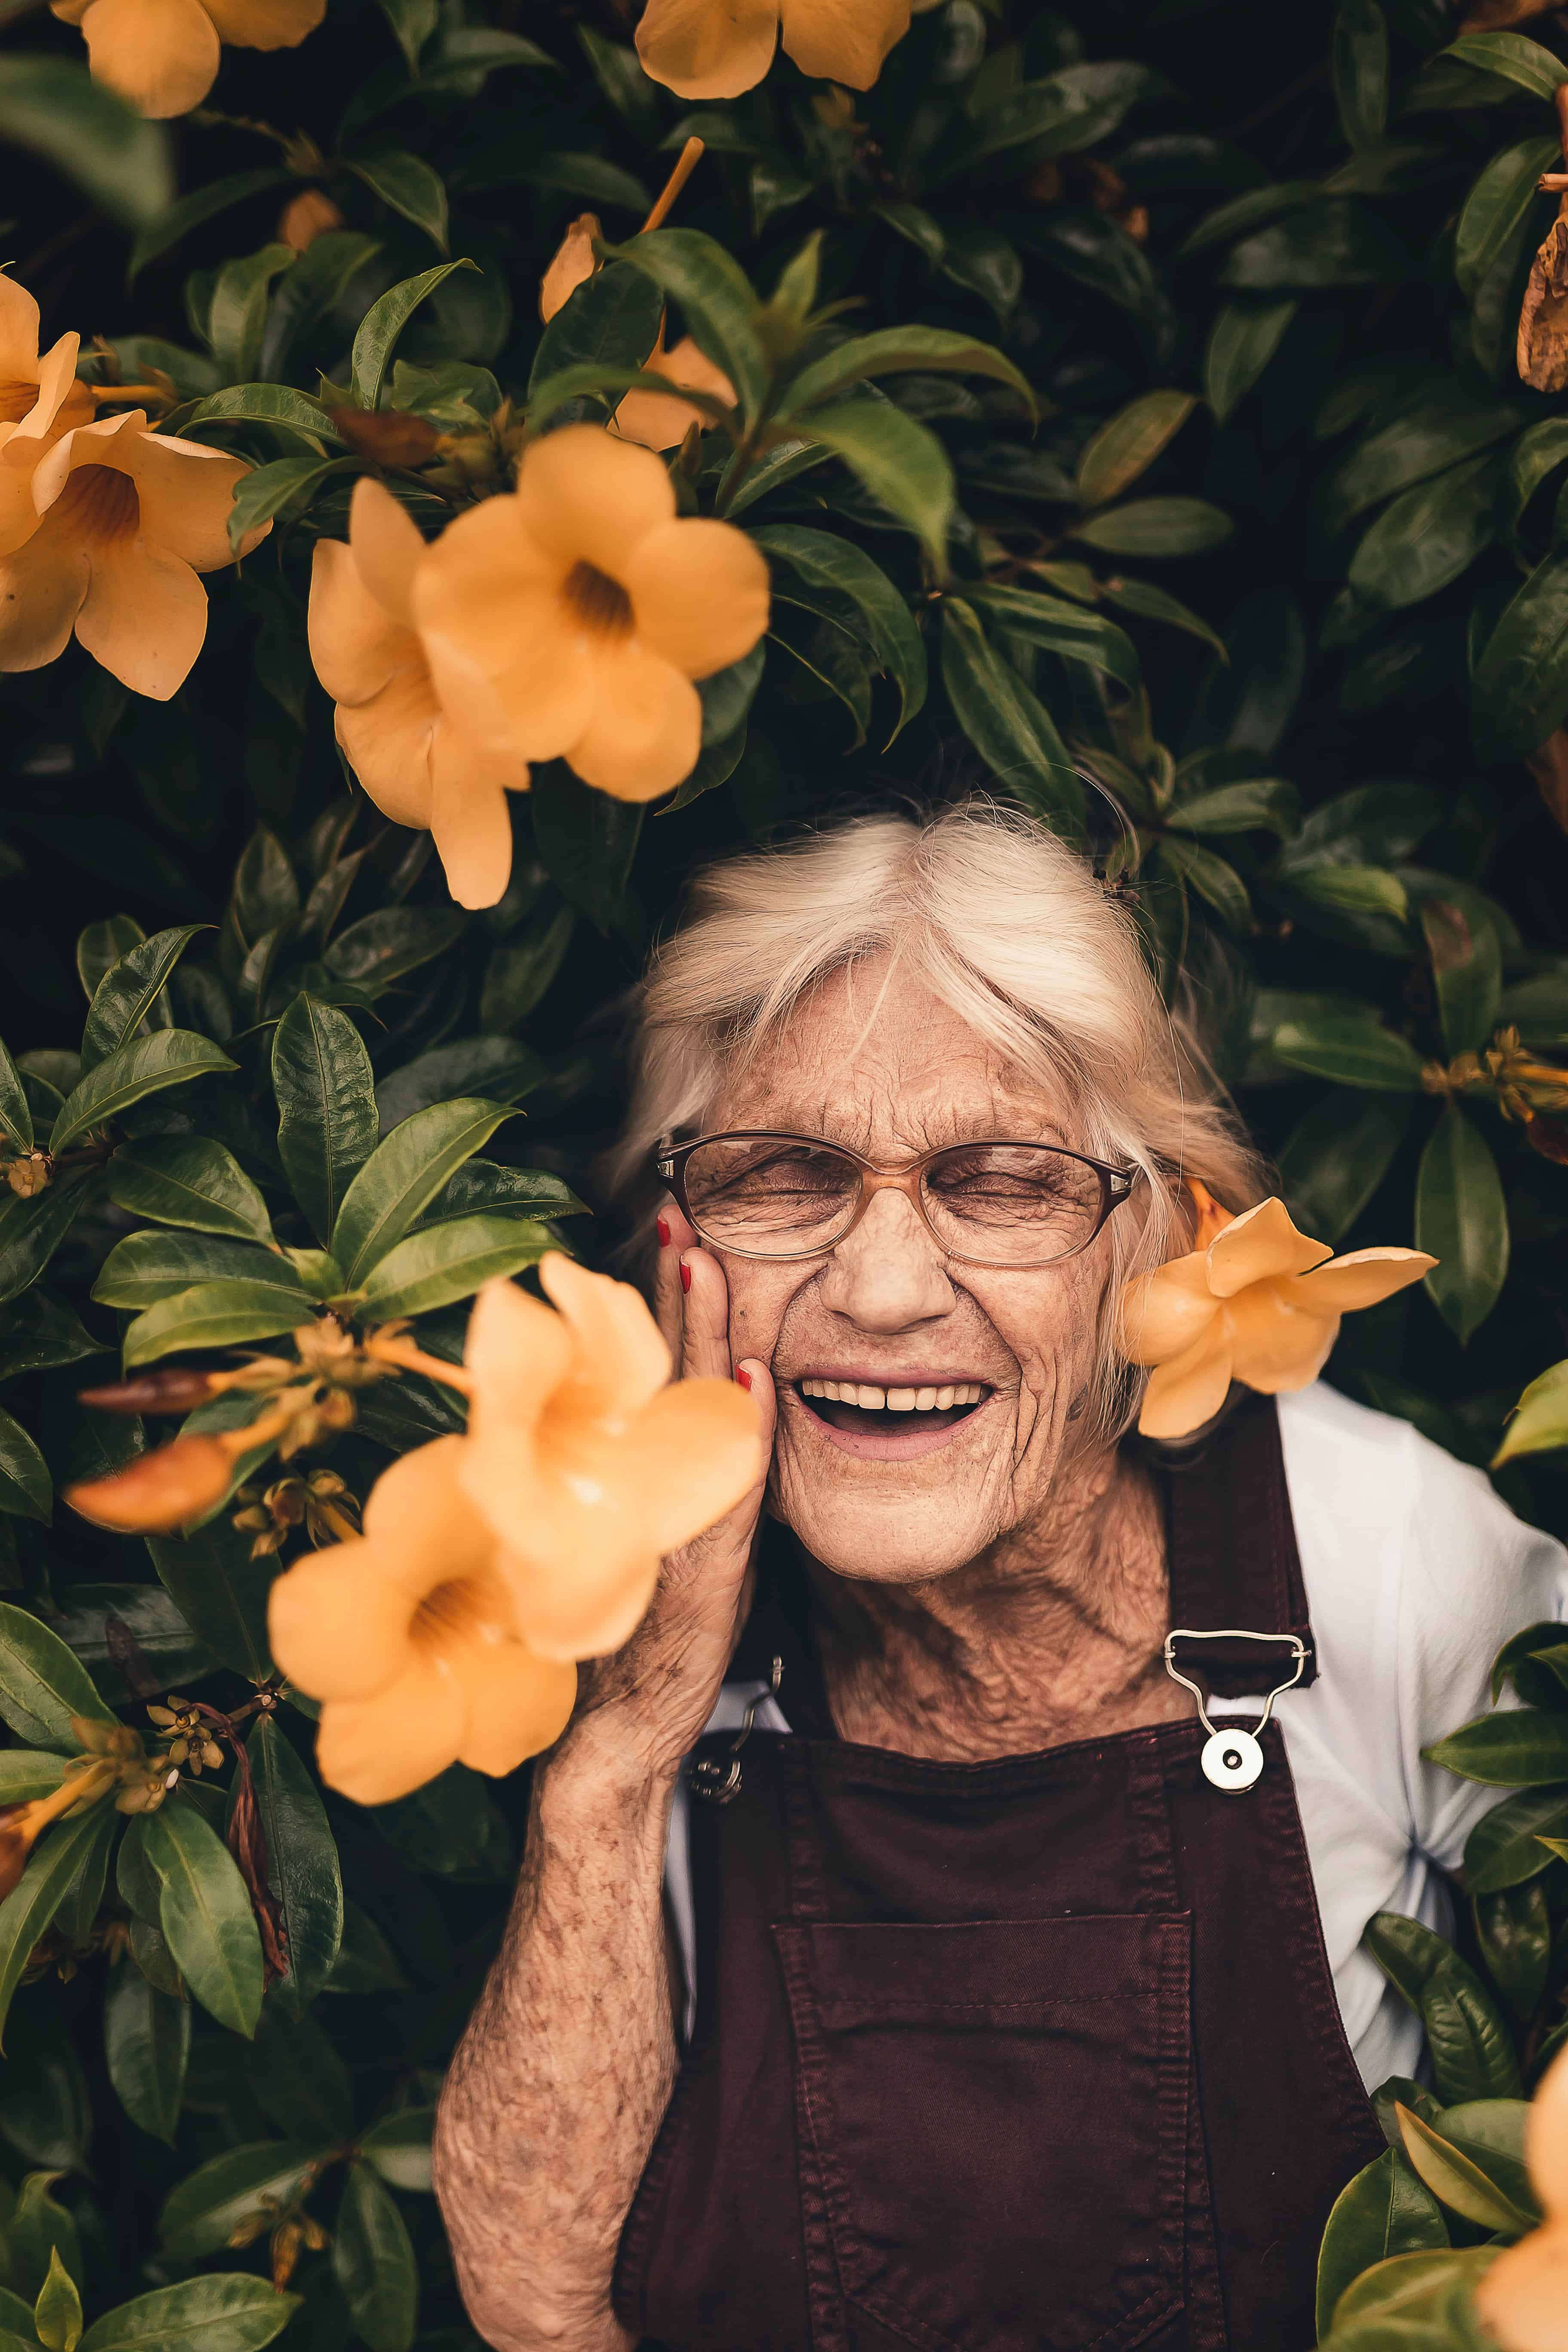 Smiling elderly woman with yellow flowers happiness